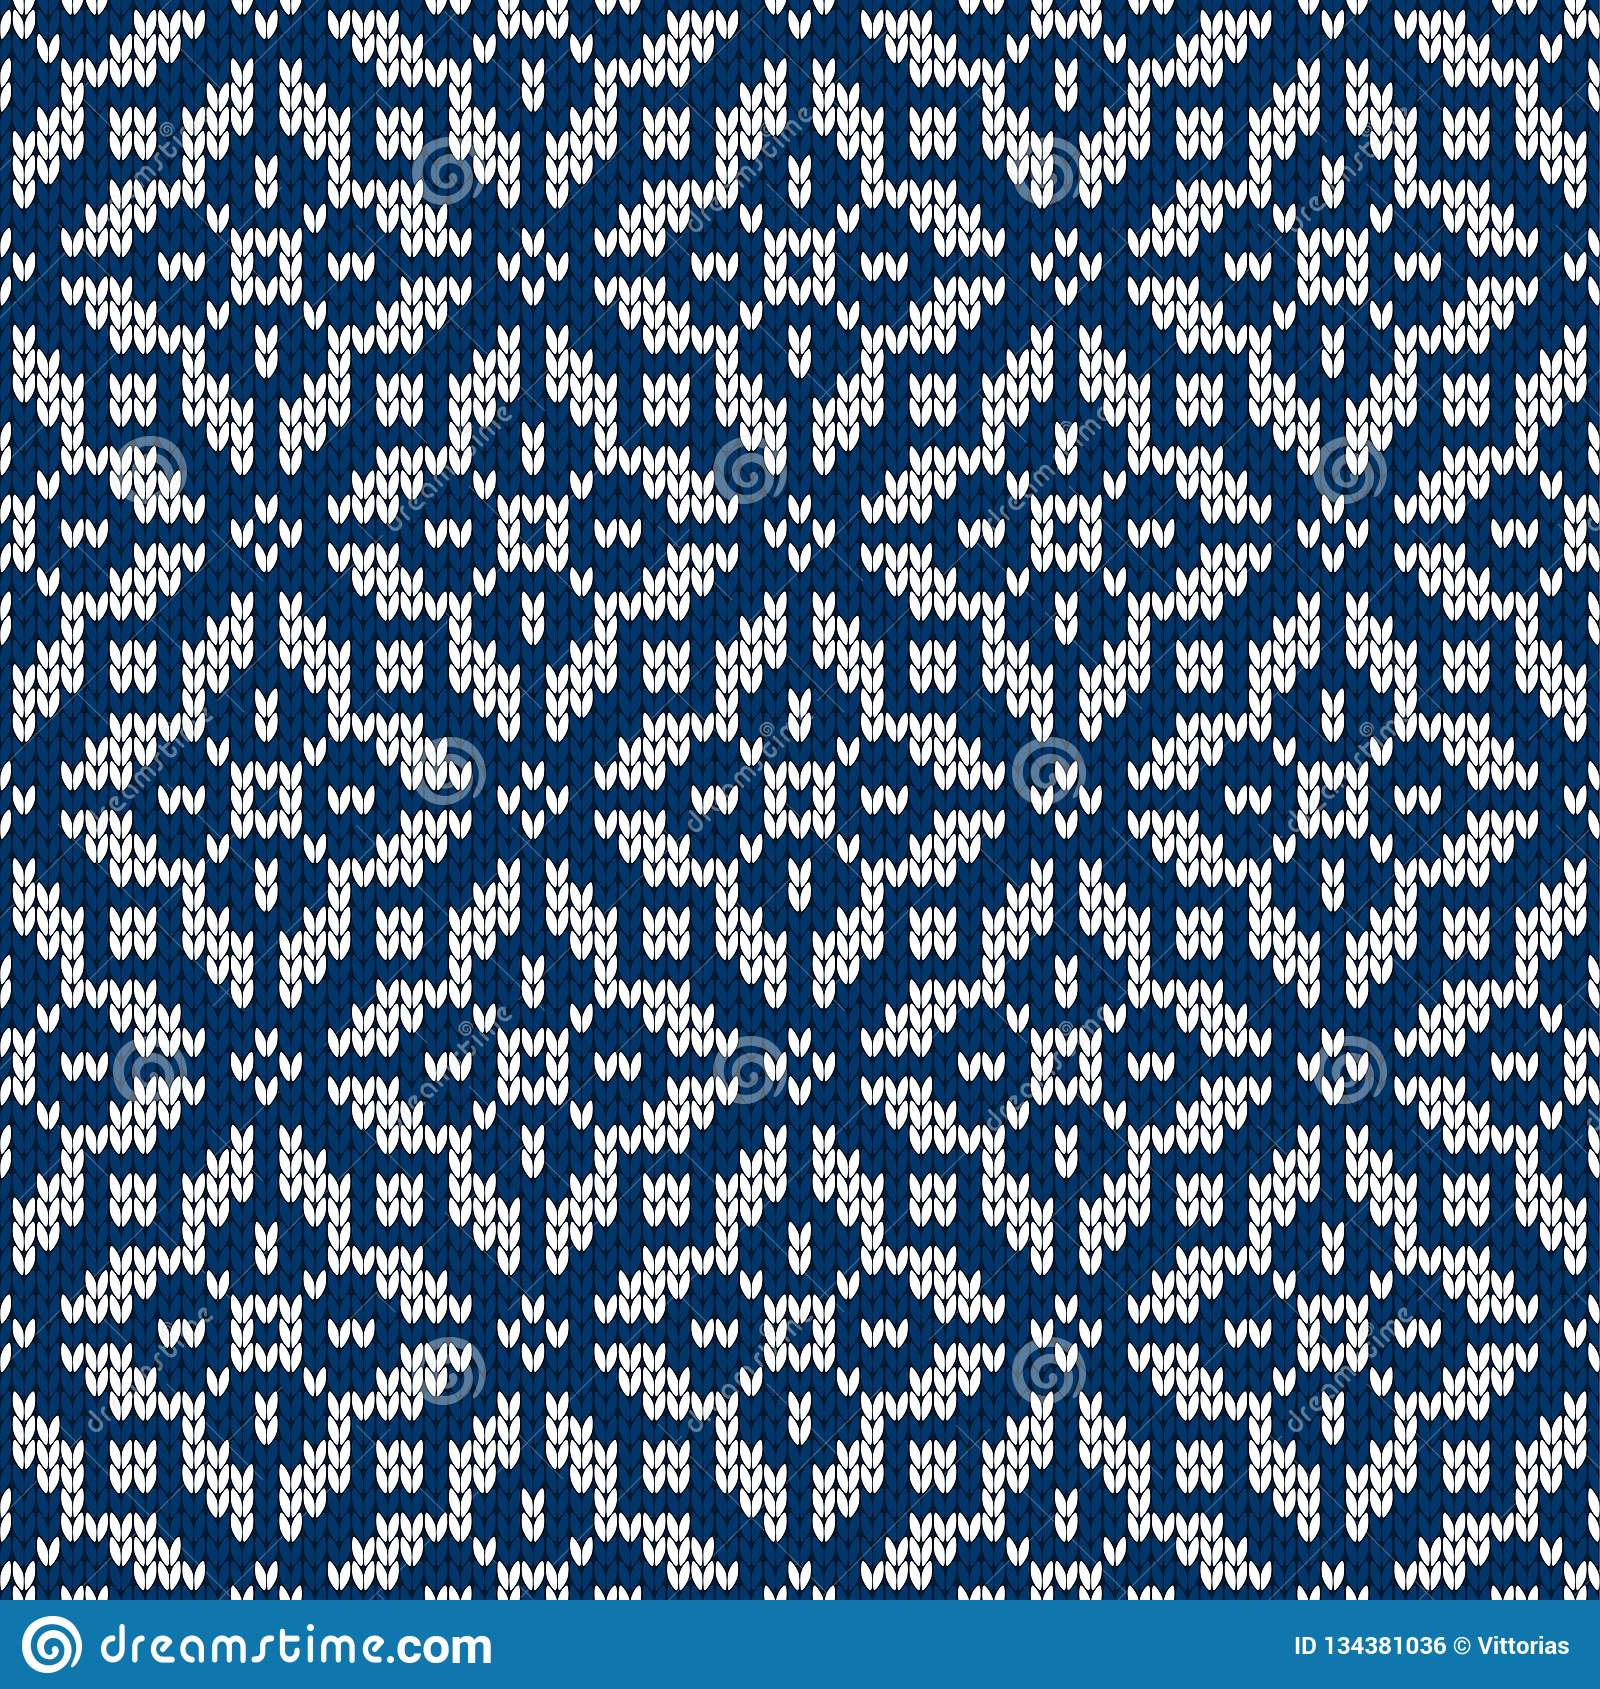 a9aa6cb94fb6 Winter sweater fairisle design. Seamless christmas and new year wool knitting  pattern. Vector illustration with snowflakes. Holiday traditional background